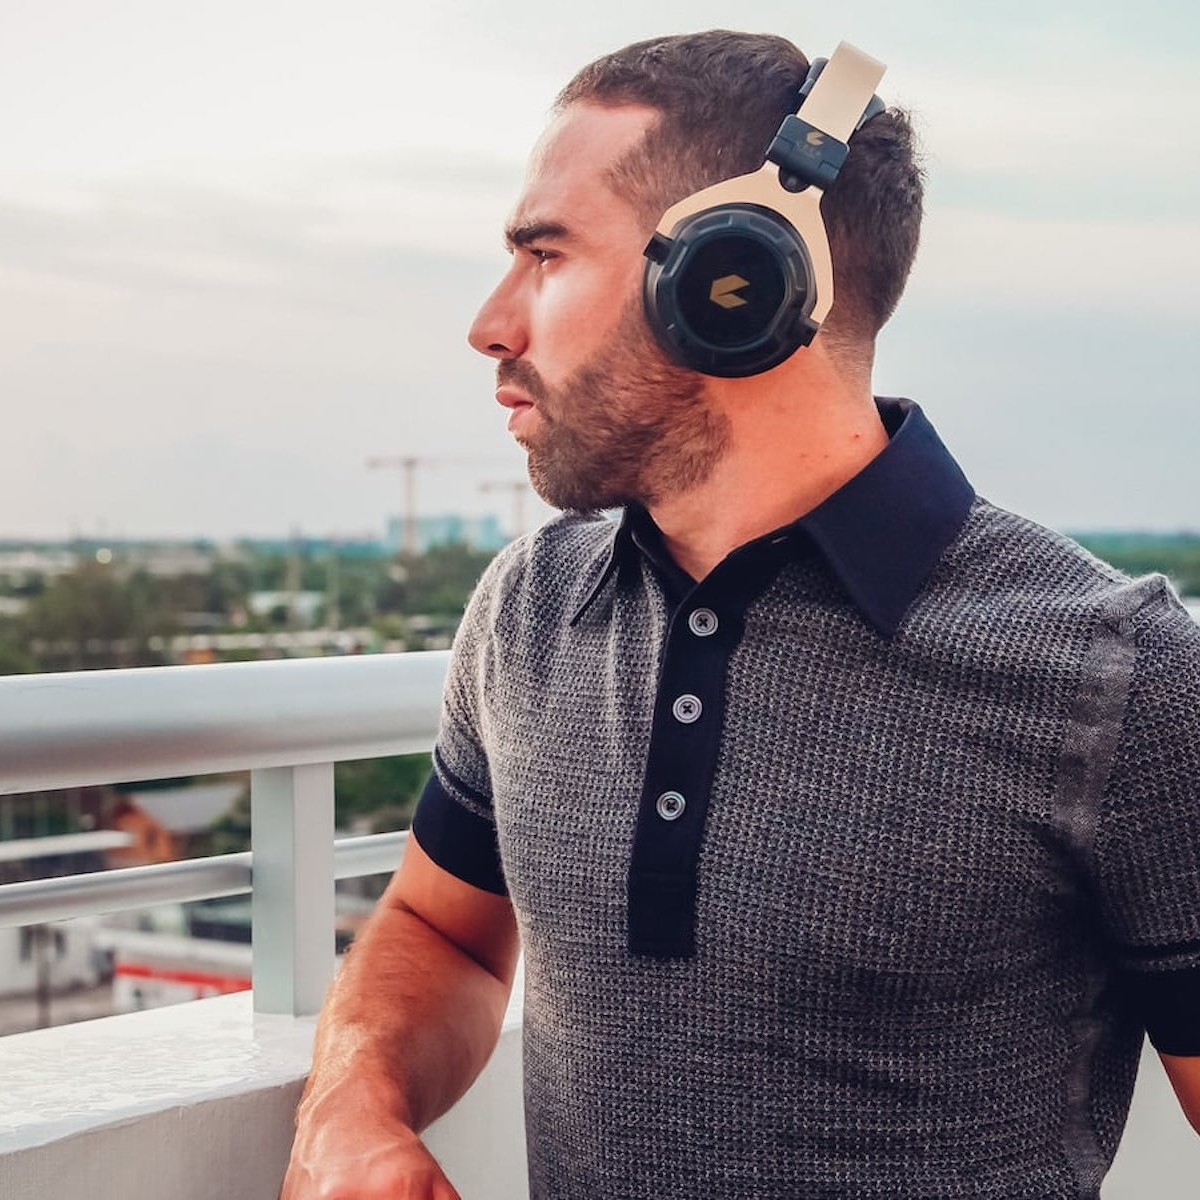 3D audio podcasts: The best 3D audio headsets to make the most of the new tech trend thumbnail